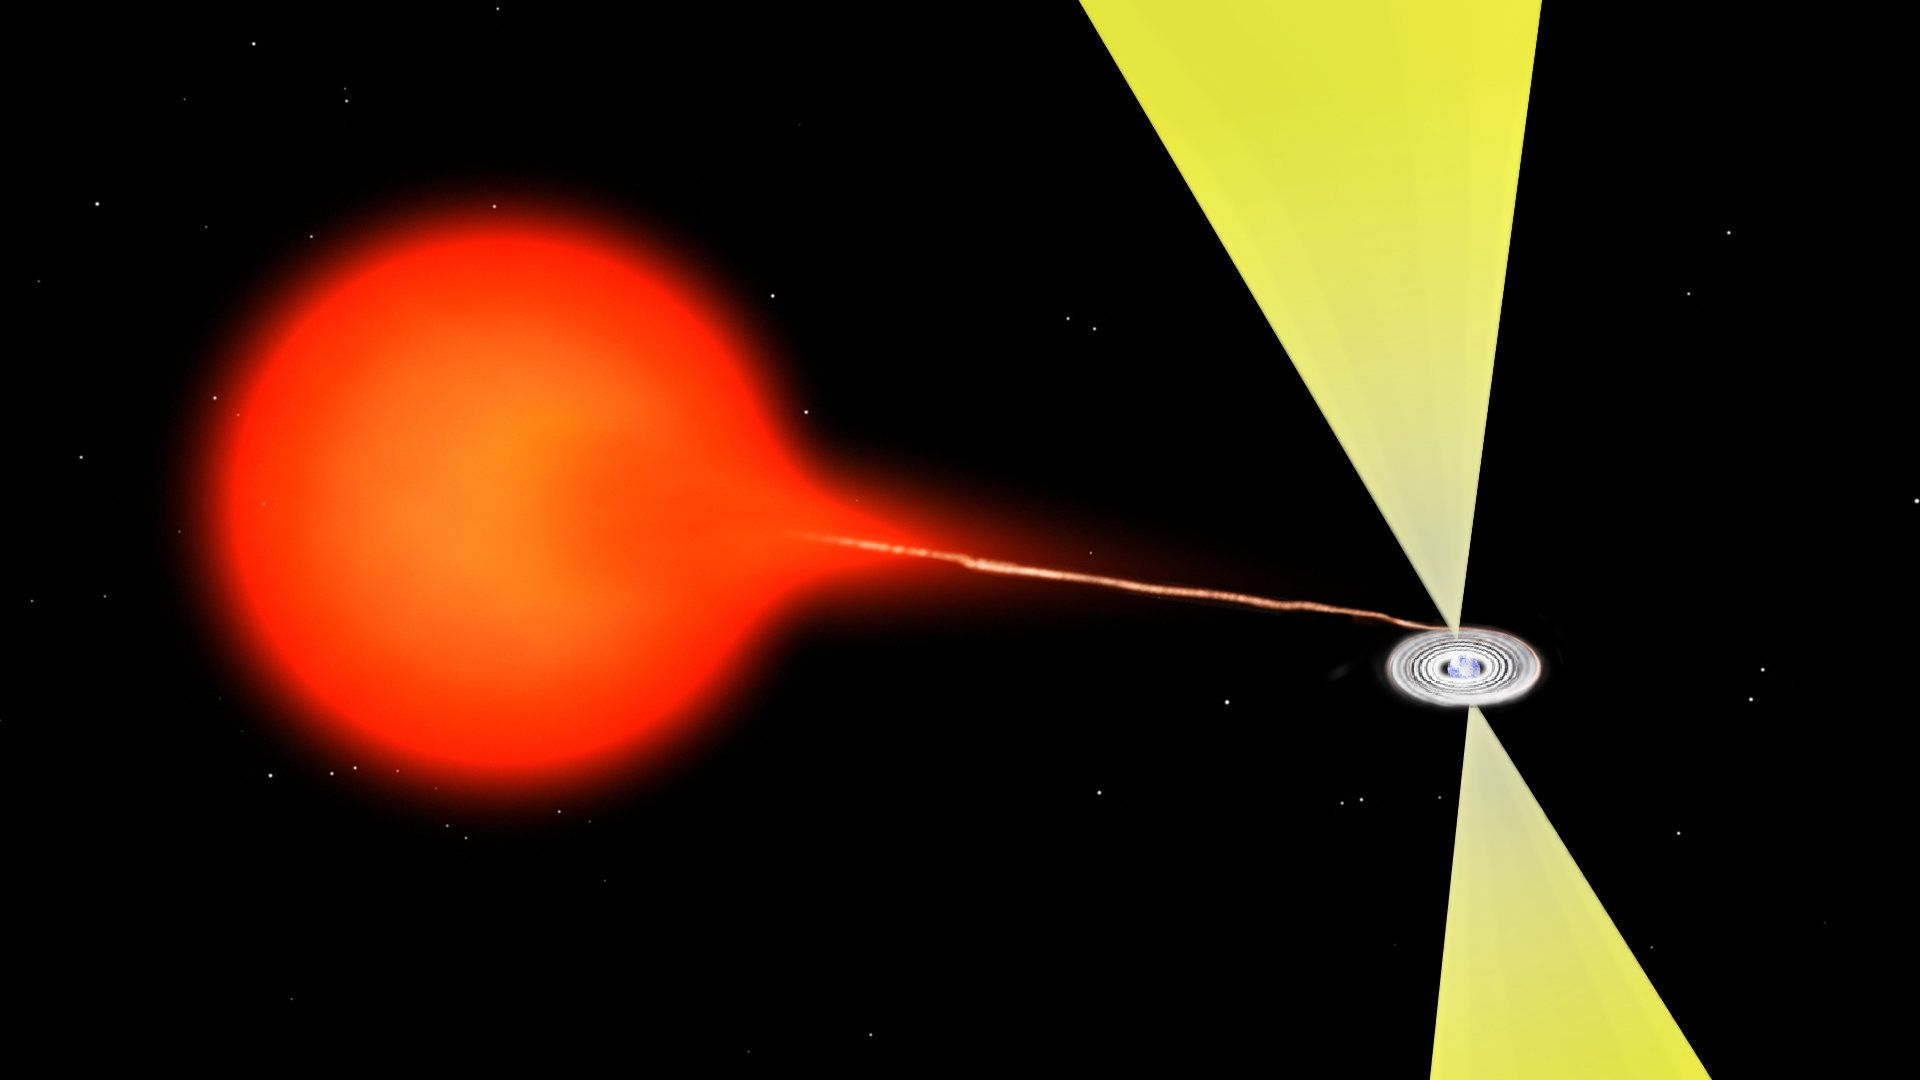 <p>Artist's impression of material flowing from a companion star onto a neutron star. The material forms an accretion disk around the neutron star and produces a superfast jet of ejected material. The material closest to the neutron star is so hot that it glows in x-rays, while the jet is most prominent at radio wavelengths. A similar mechanism is at work with black holes.</p>